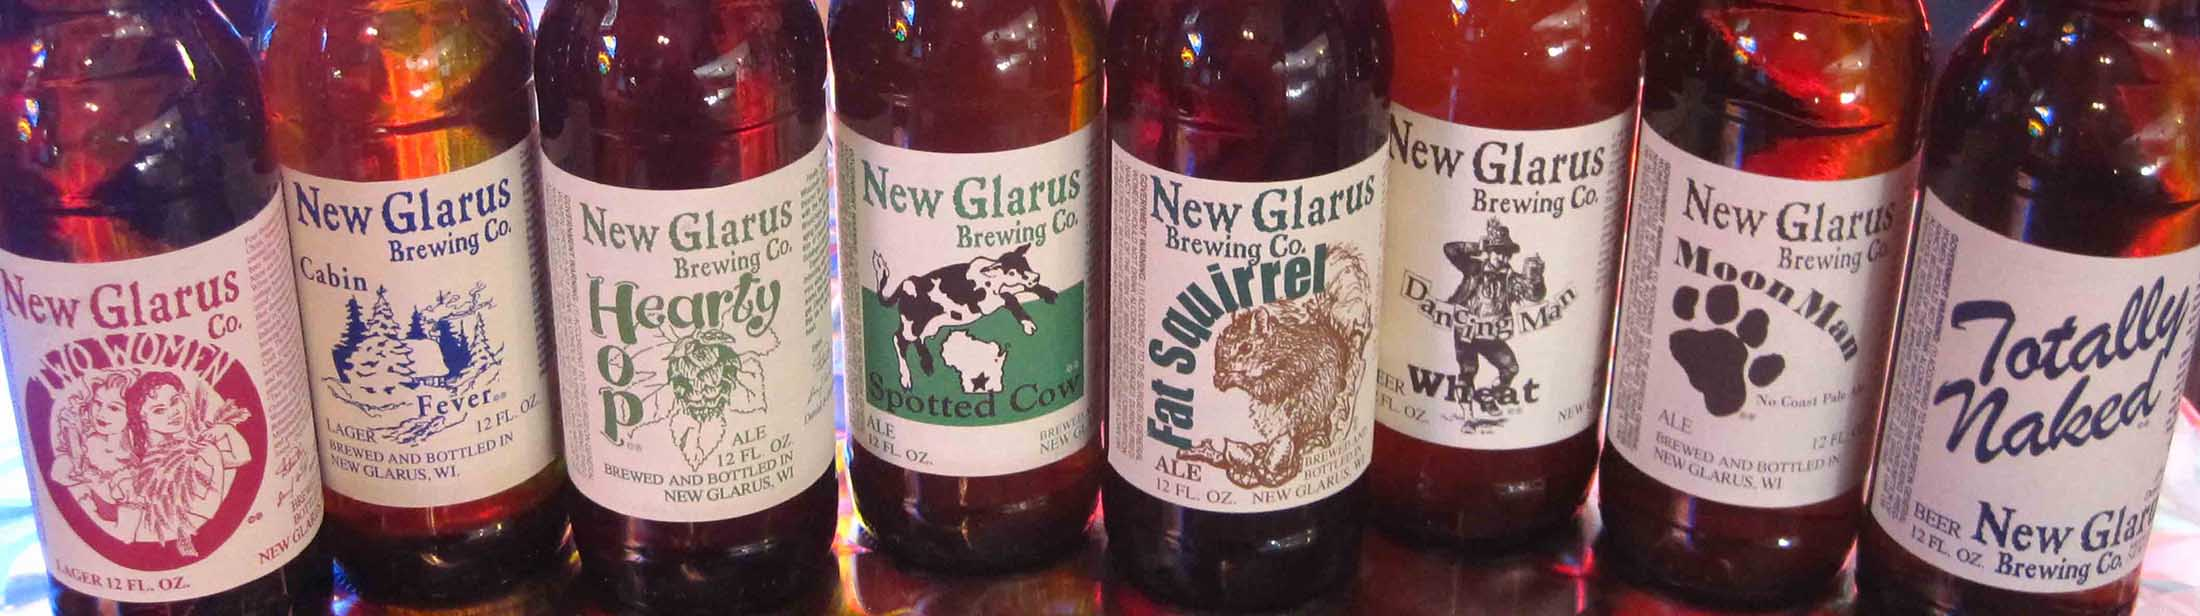 New-Glarus-Spotted-Cow-Brewery-Beer-Cornellier-Super-Store-Beloit-WI-2